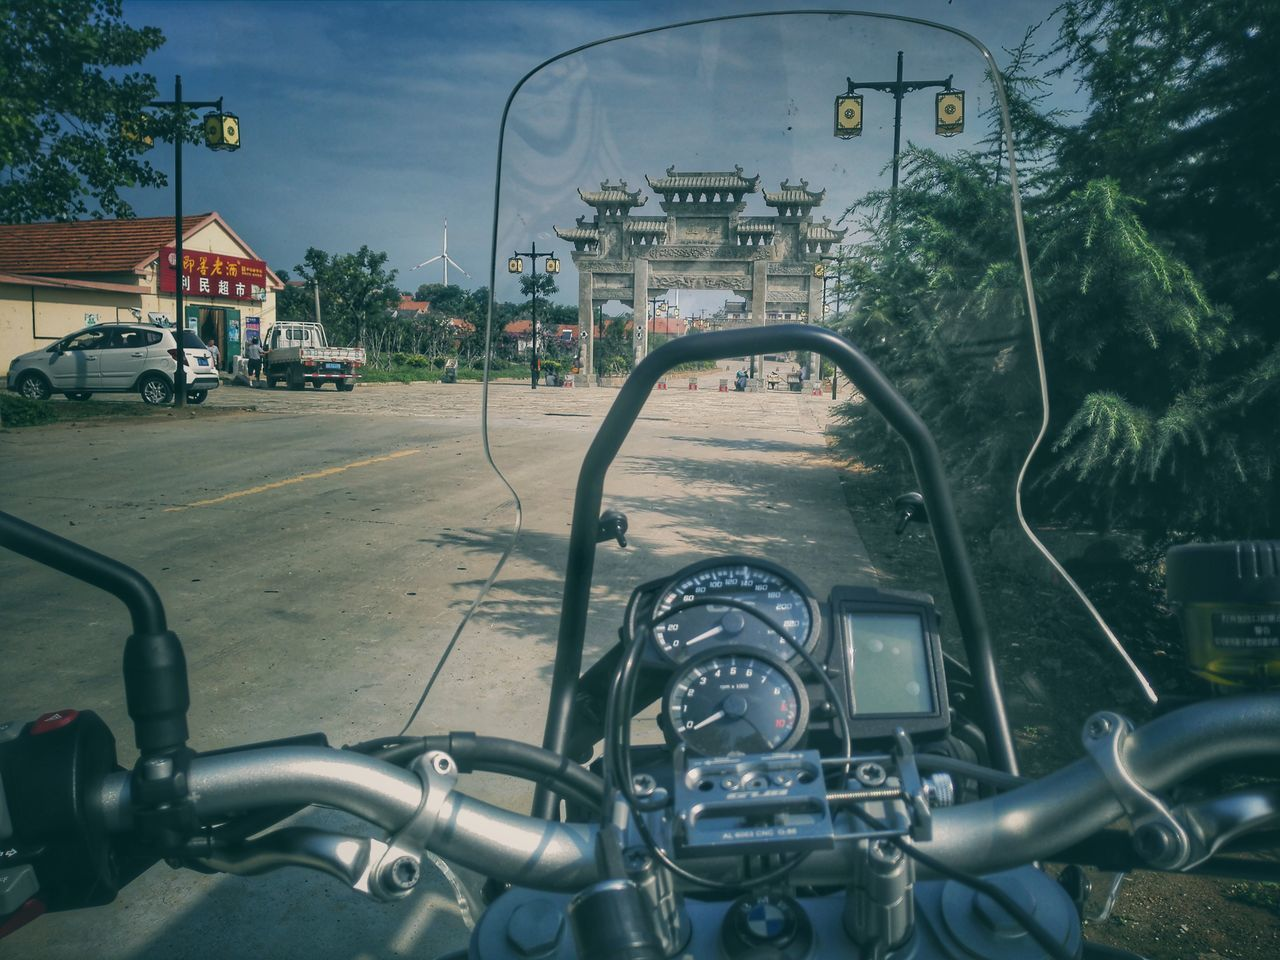 transportation, day, mode of transport, road, outdoors, no people, tree, architecture, city